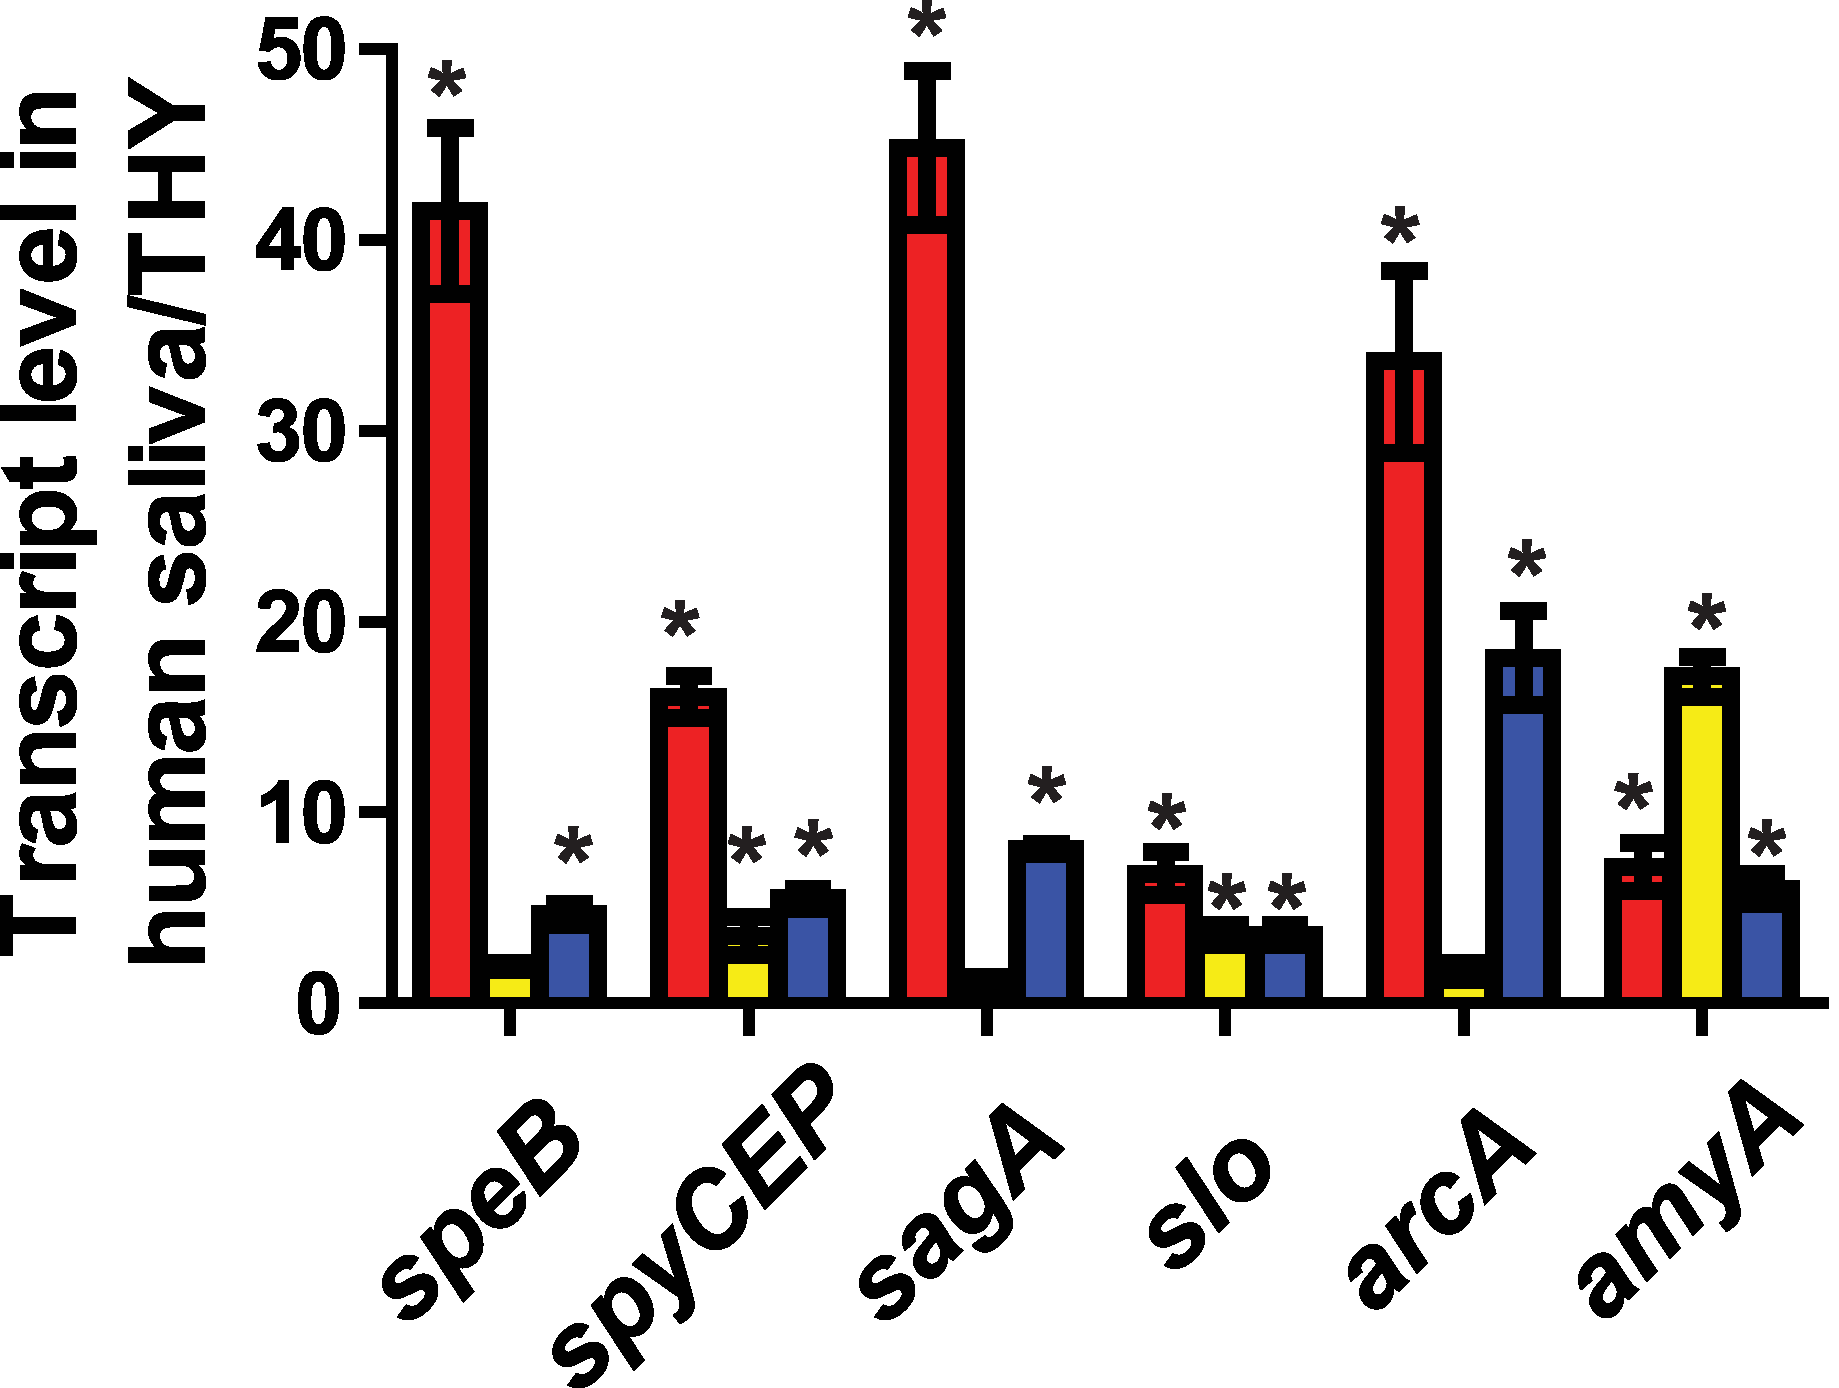 CcpA and CovR contribute to GAS gene expression during growth in human saliva.